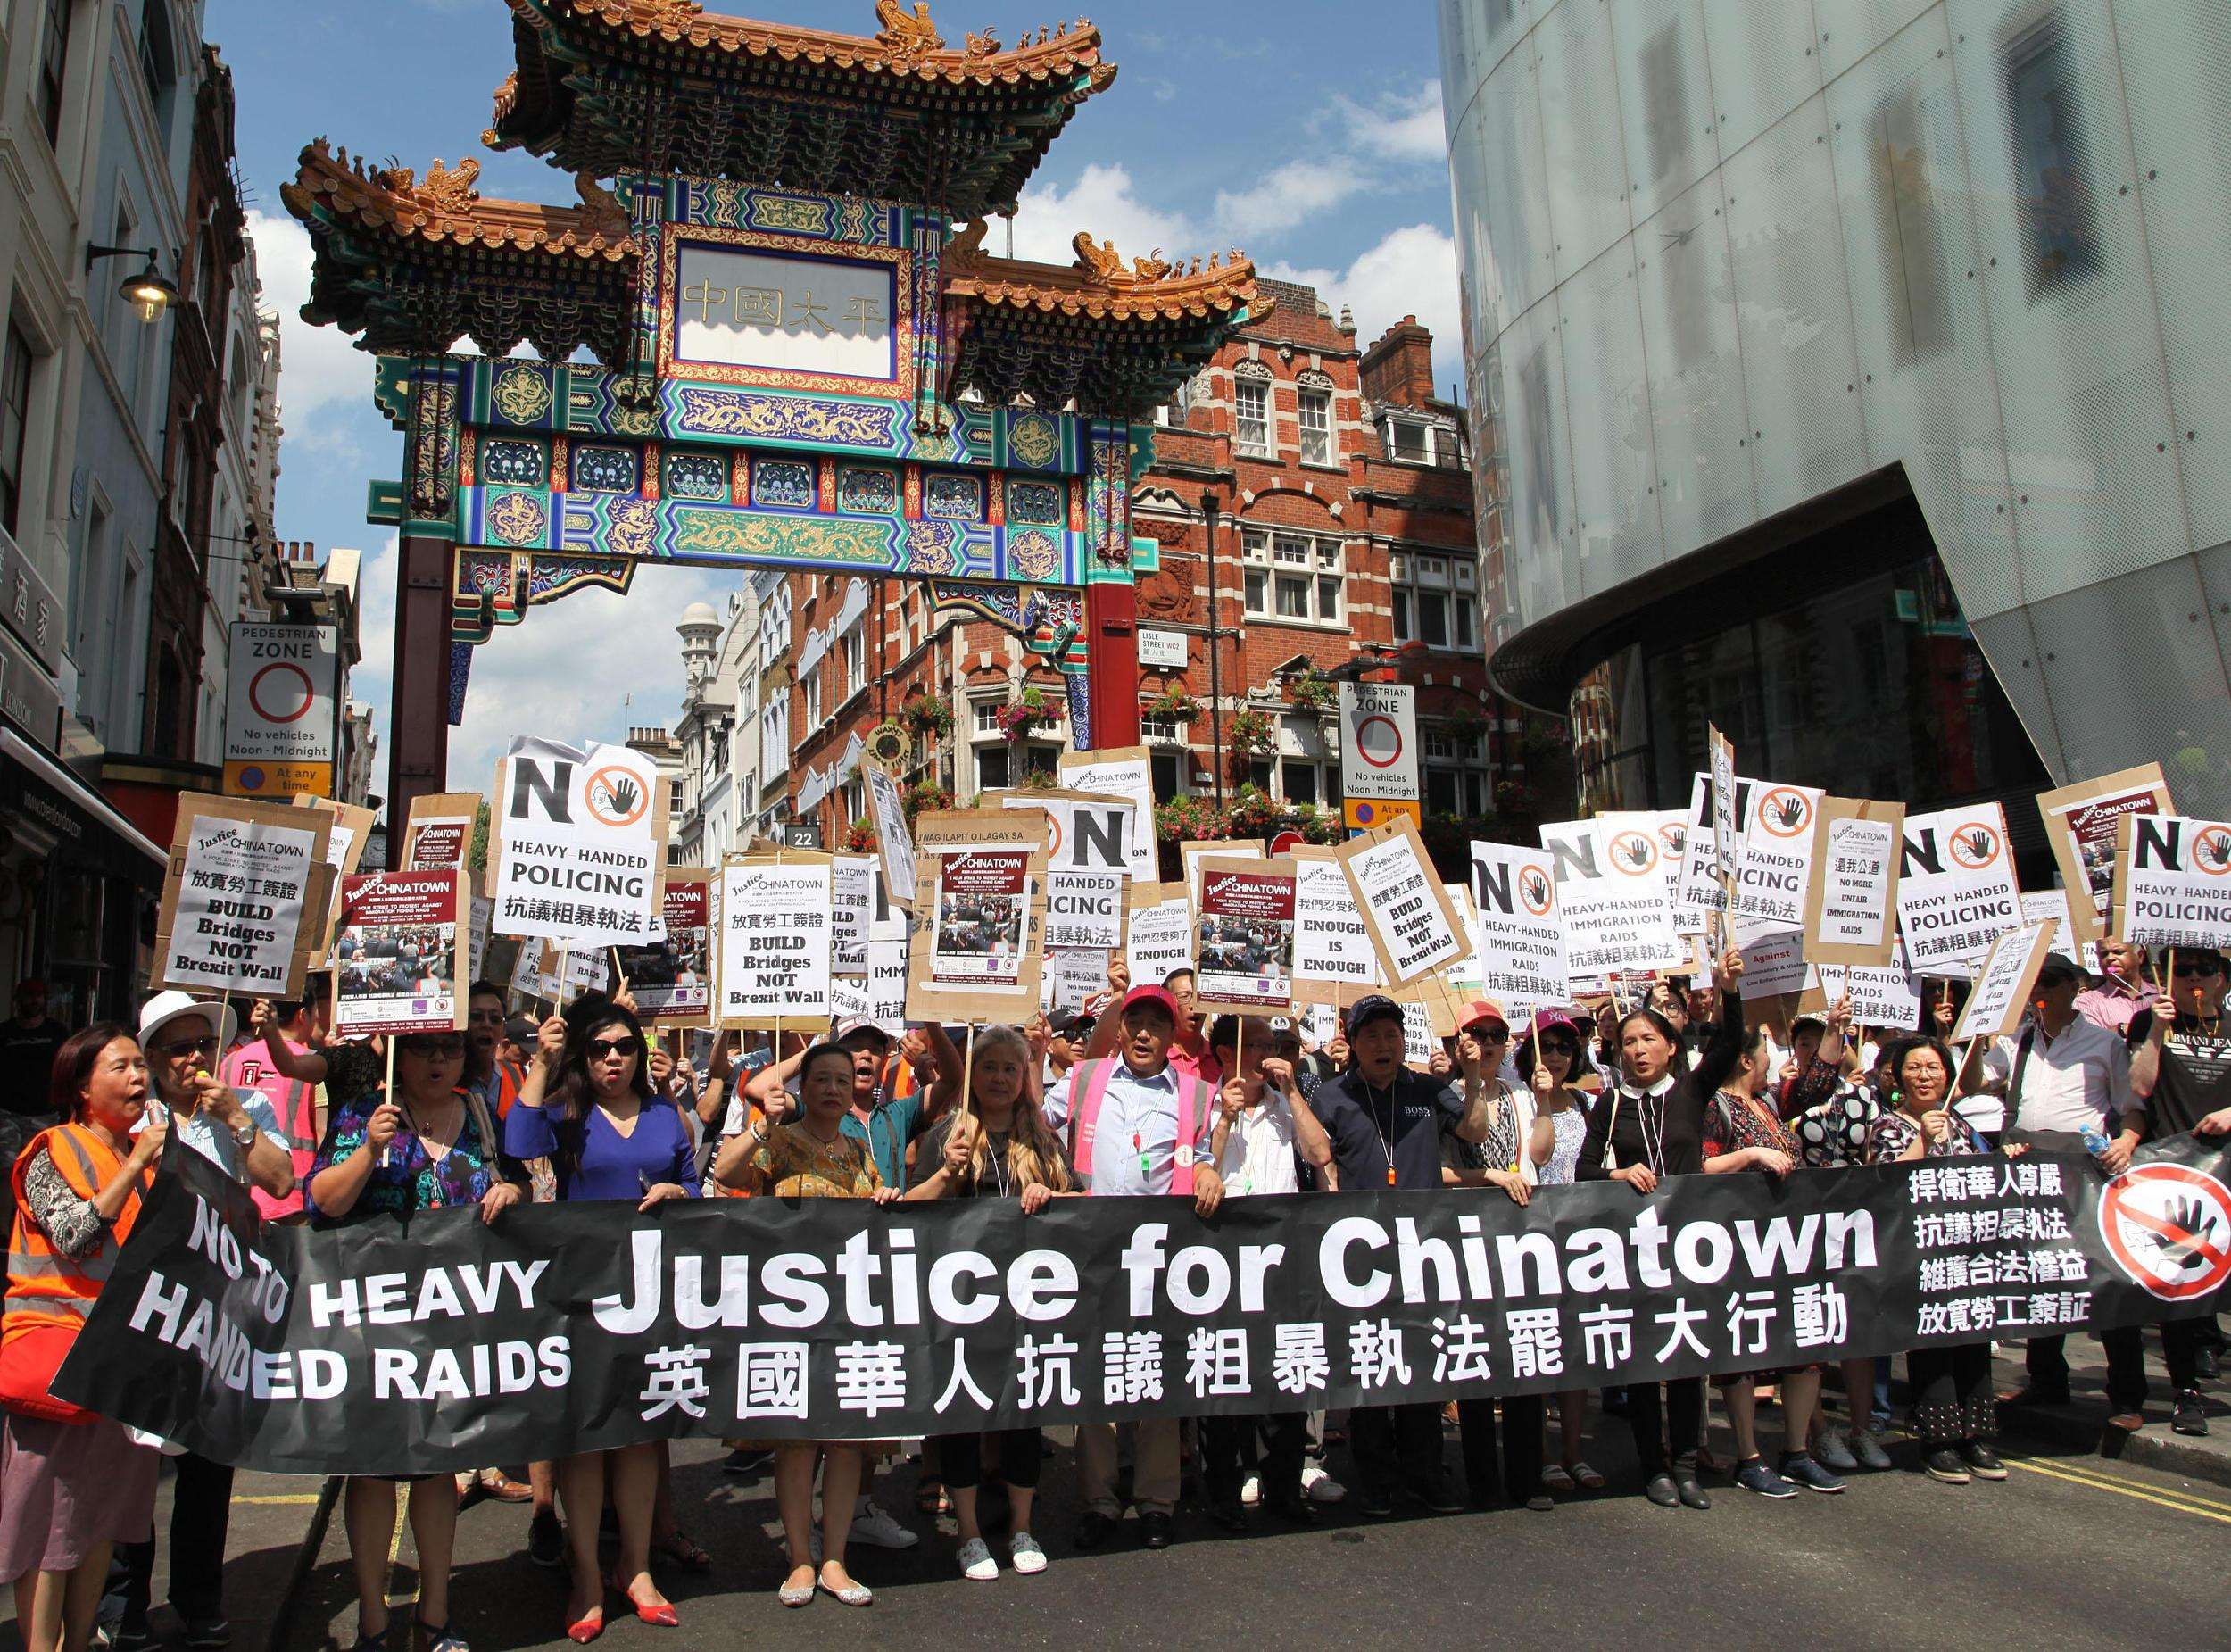 Chinatown businesses shut in protest against Home Office raids